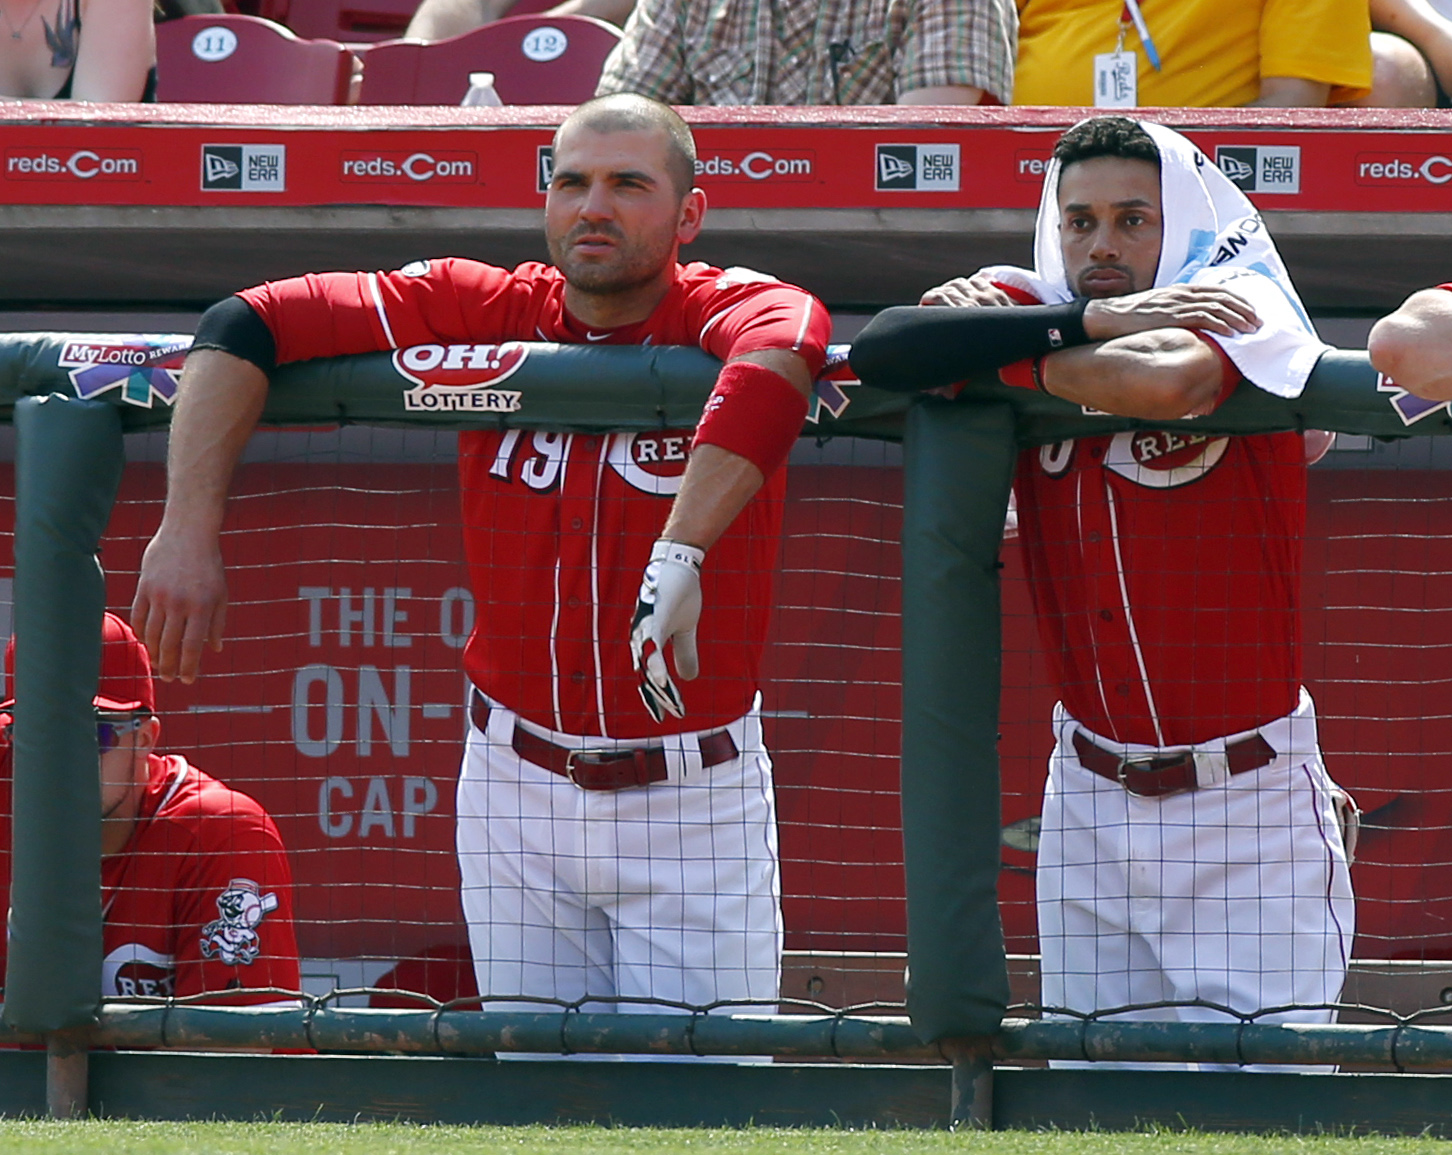 MLB: Colorado Rockies at Cincinnati Reds